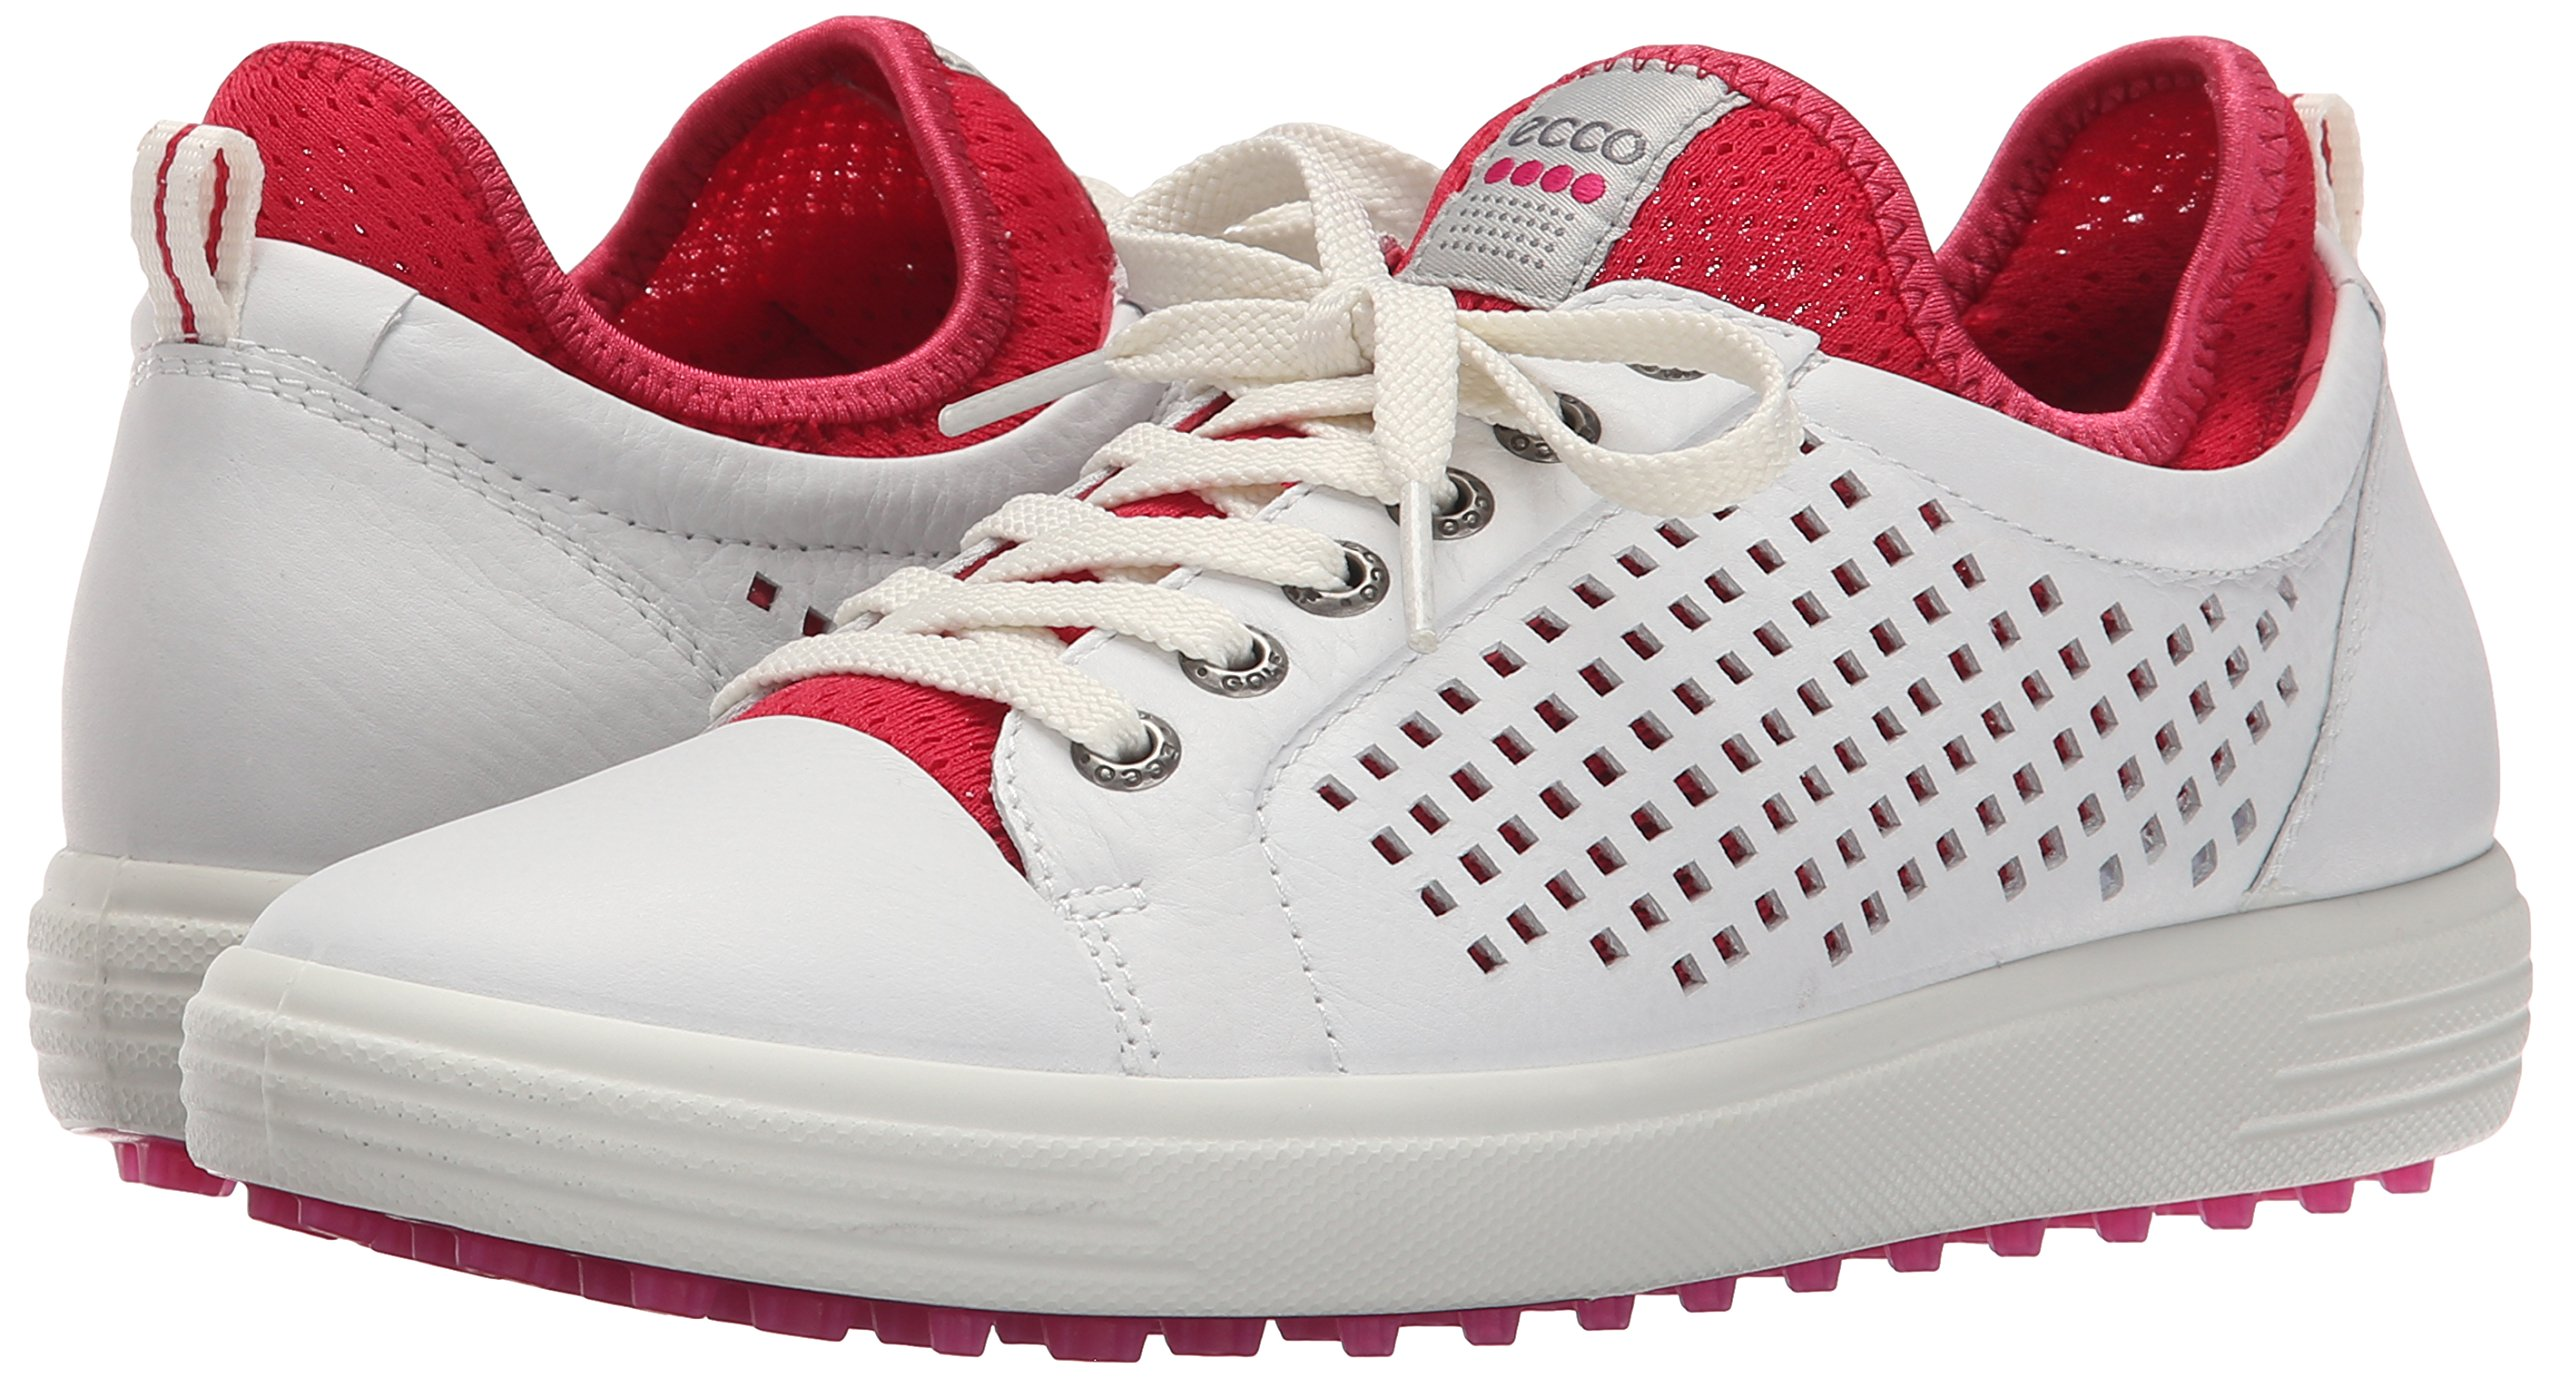 ECCO Women's Summer Hybrid Golf Shoe, White/Raspberry, 41 EU/10-10.5 M US by ECCO (Image #6)